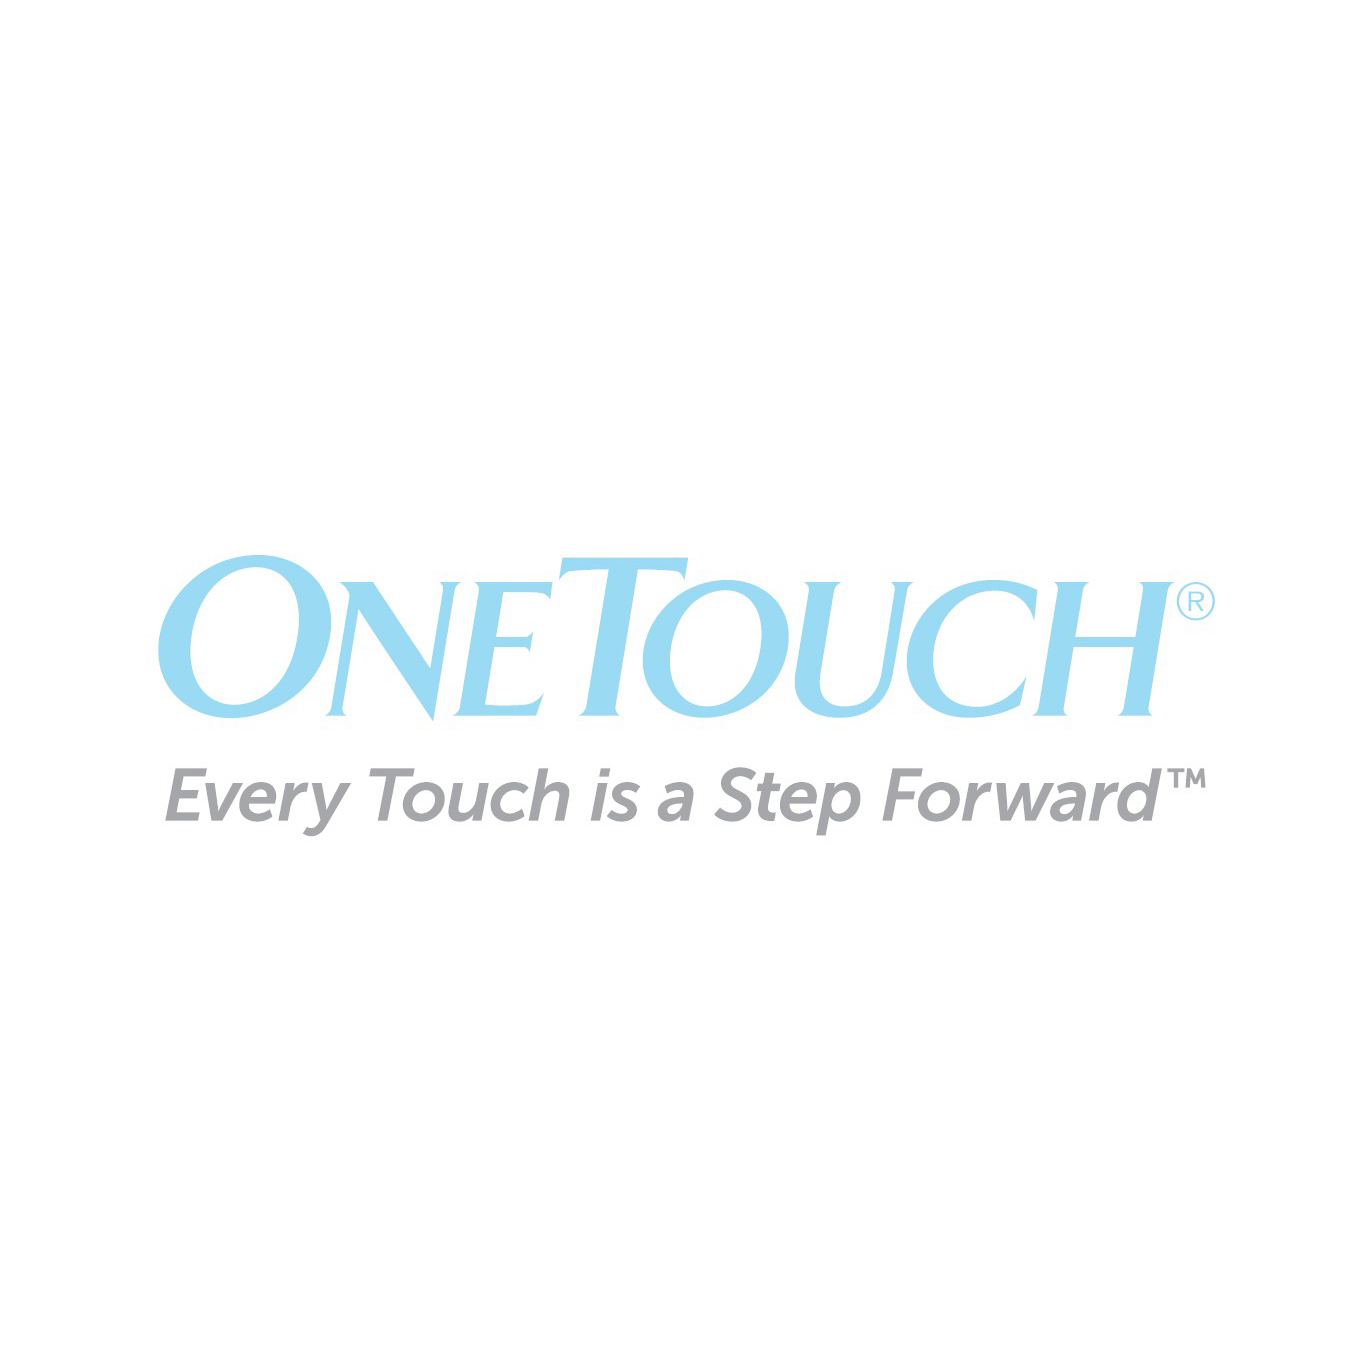 One Touch Commercial : in production  Stand-by Art Director